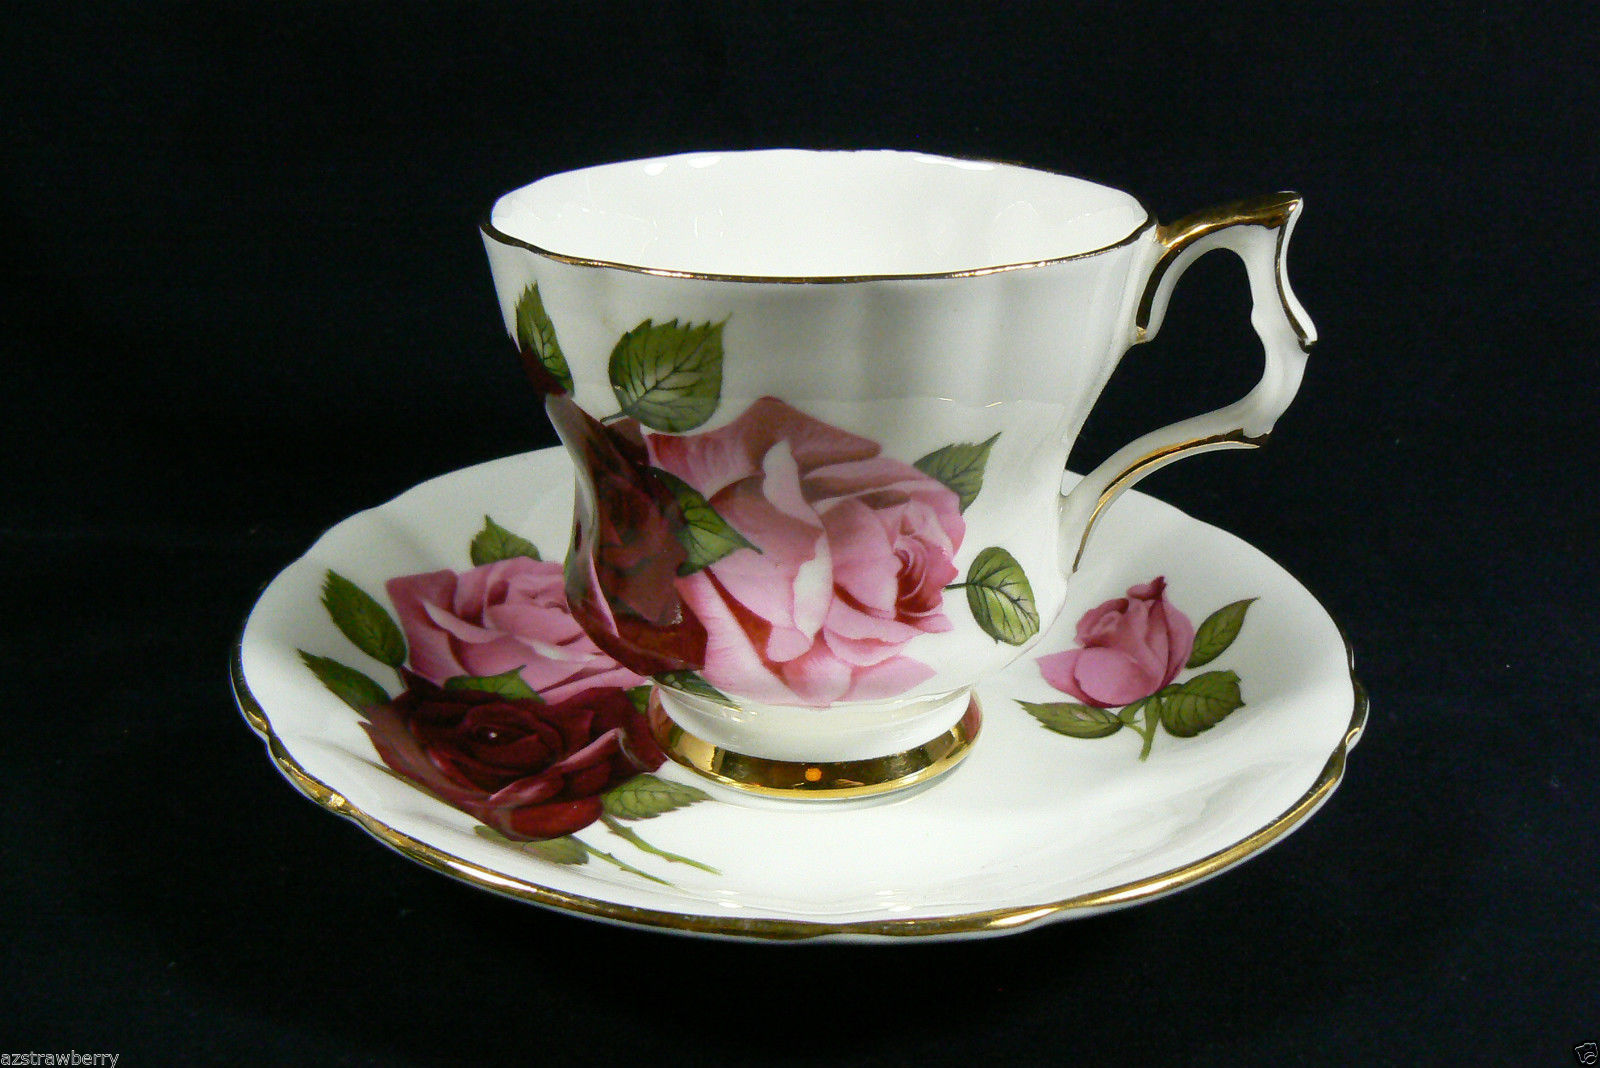 windsor fine bone china made in england pink roses tea cup saucer set other. Black Bedroom Furniture Sets. Home Design Ideas